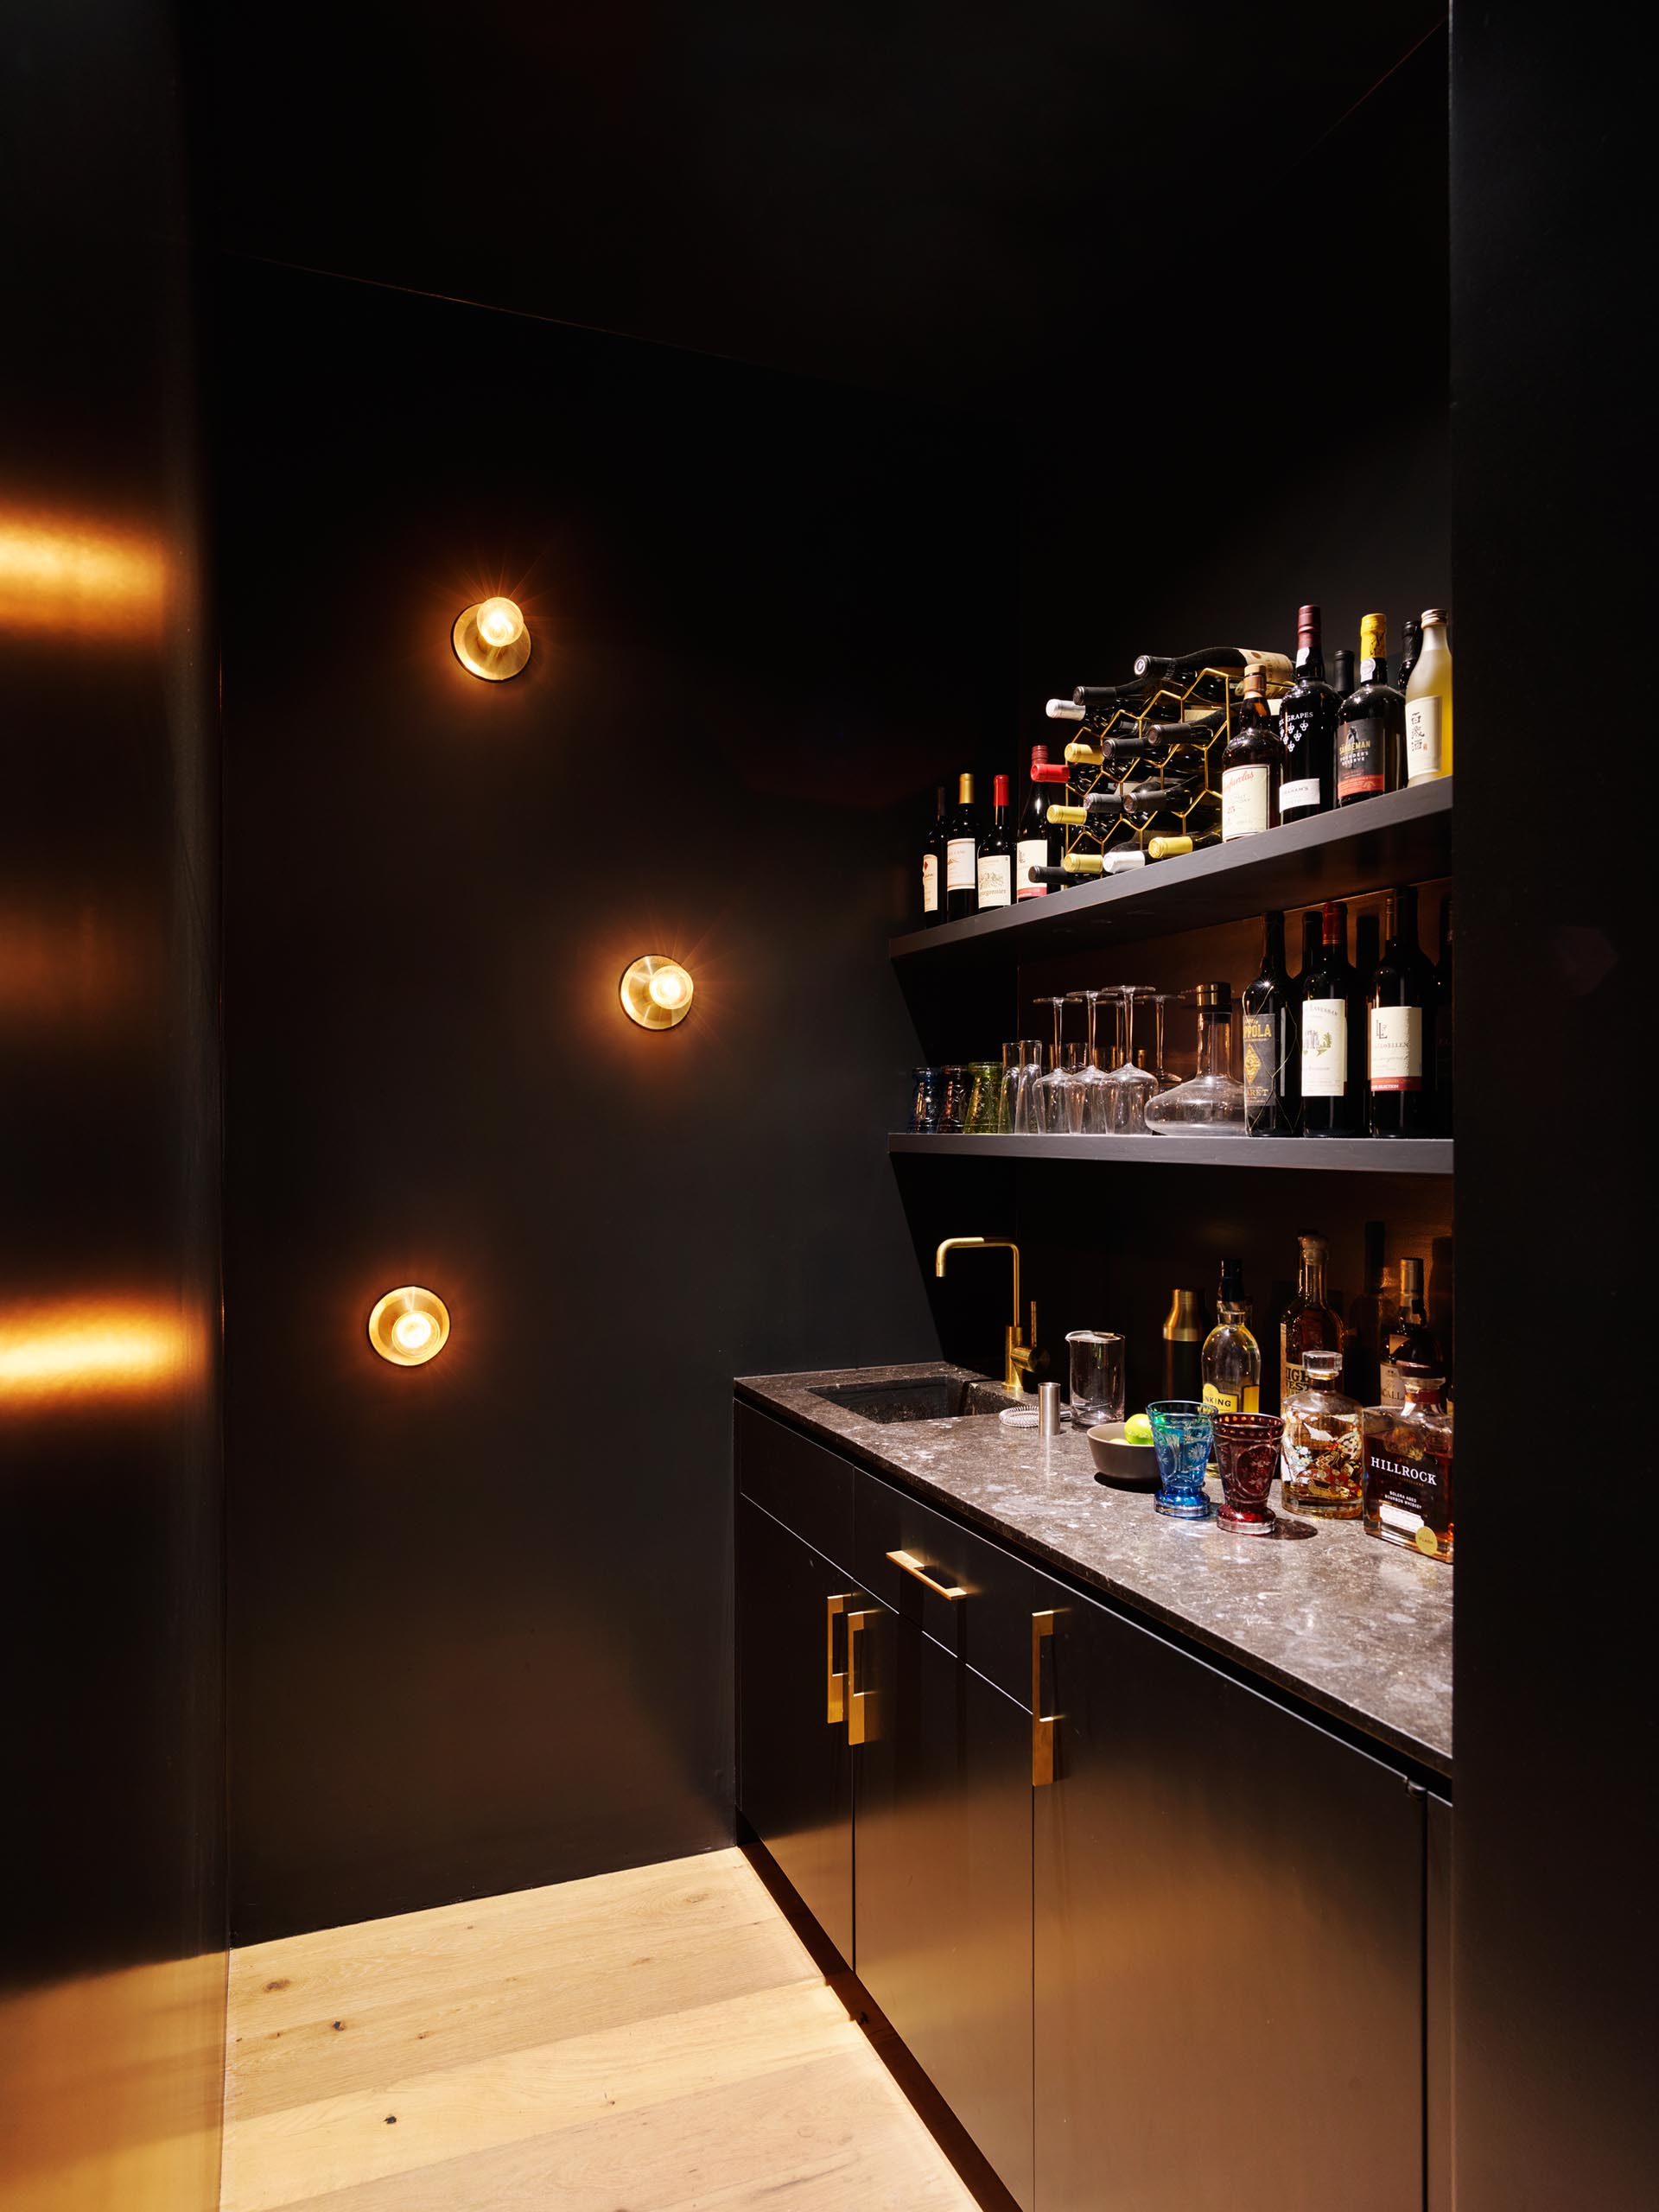 A small black home bar with shelving and cabinets.